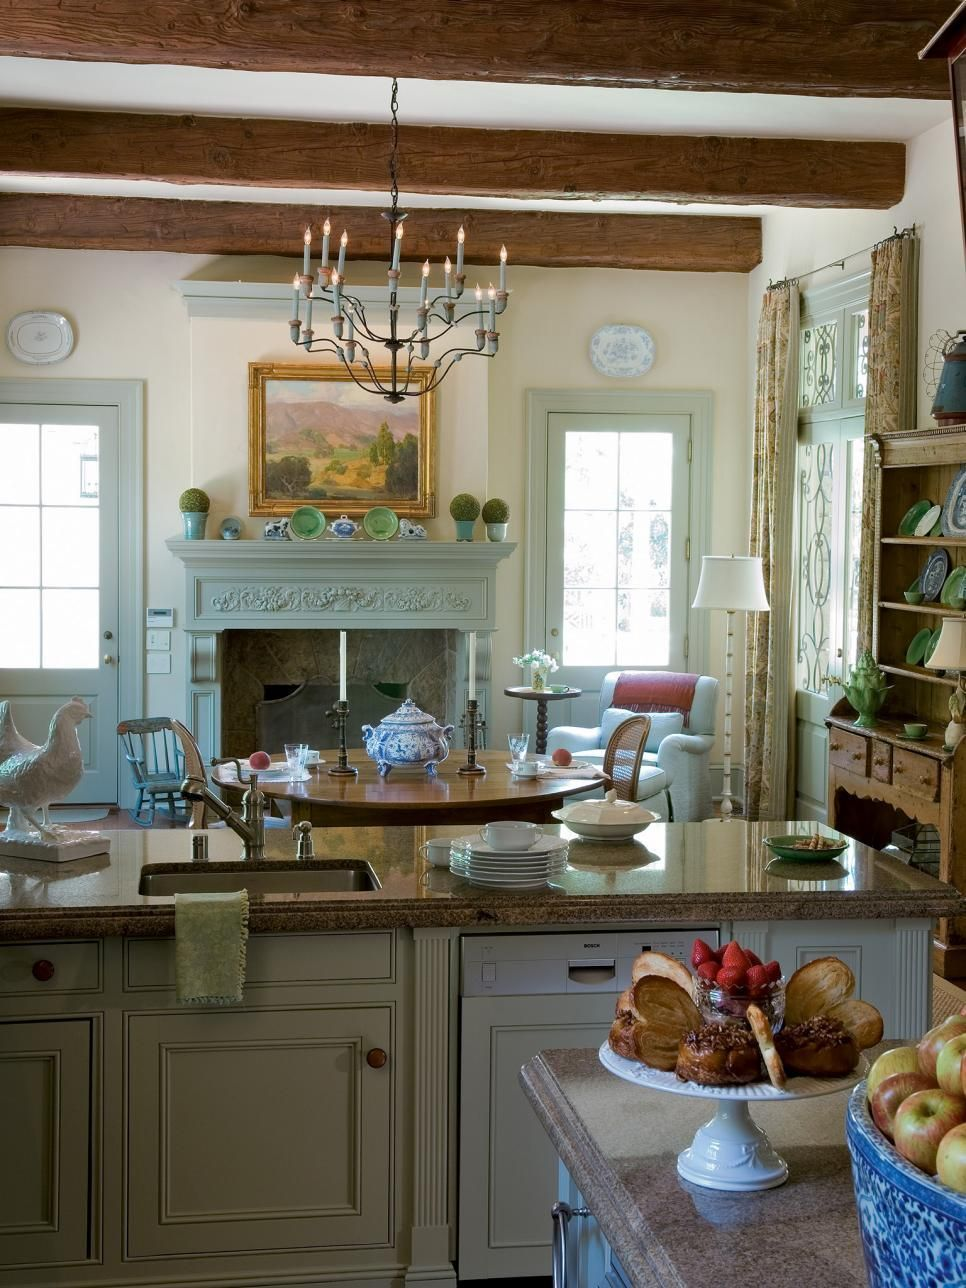 GroBartig Rather Than Completely Remodeling The Kitchen, It Was Revitalized With  Unifying French Gray On The